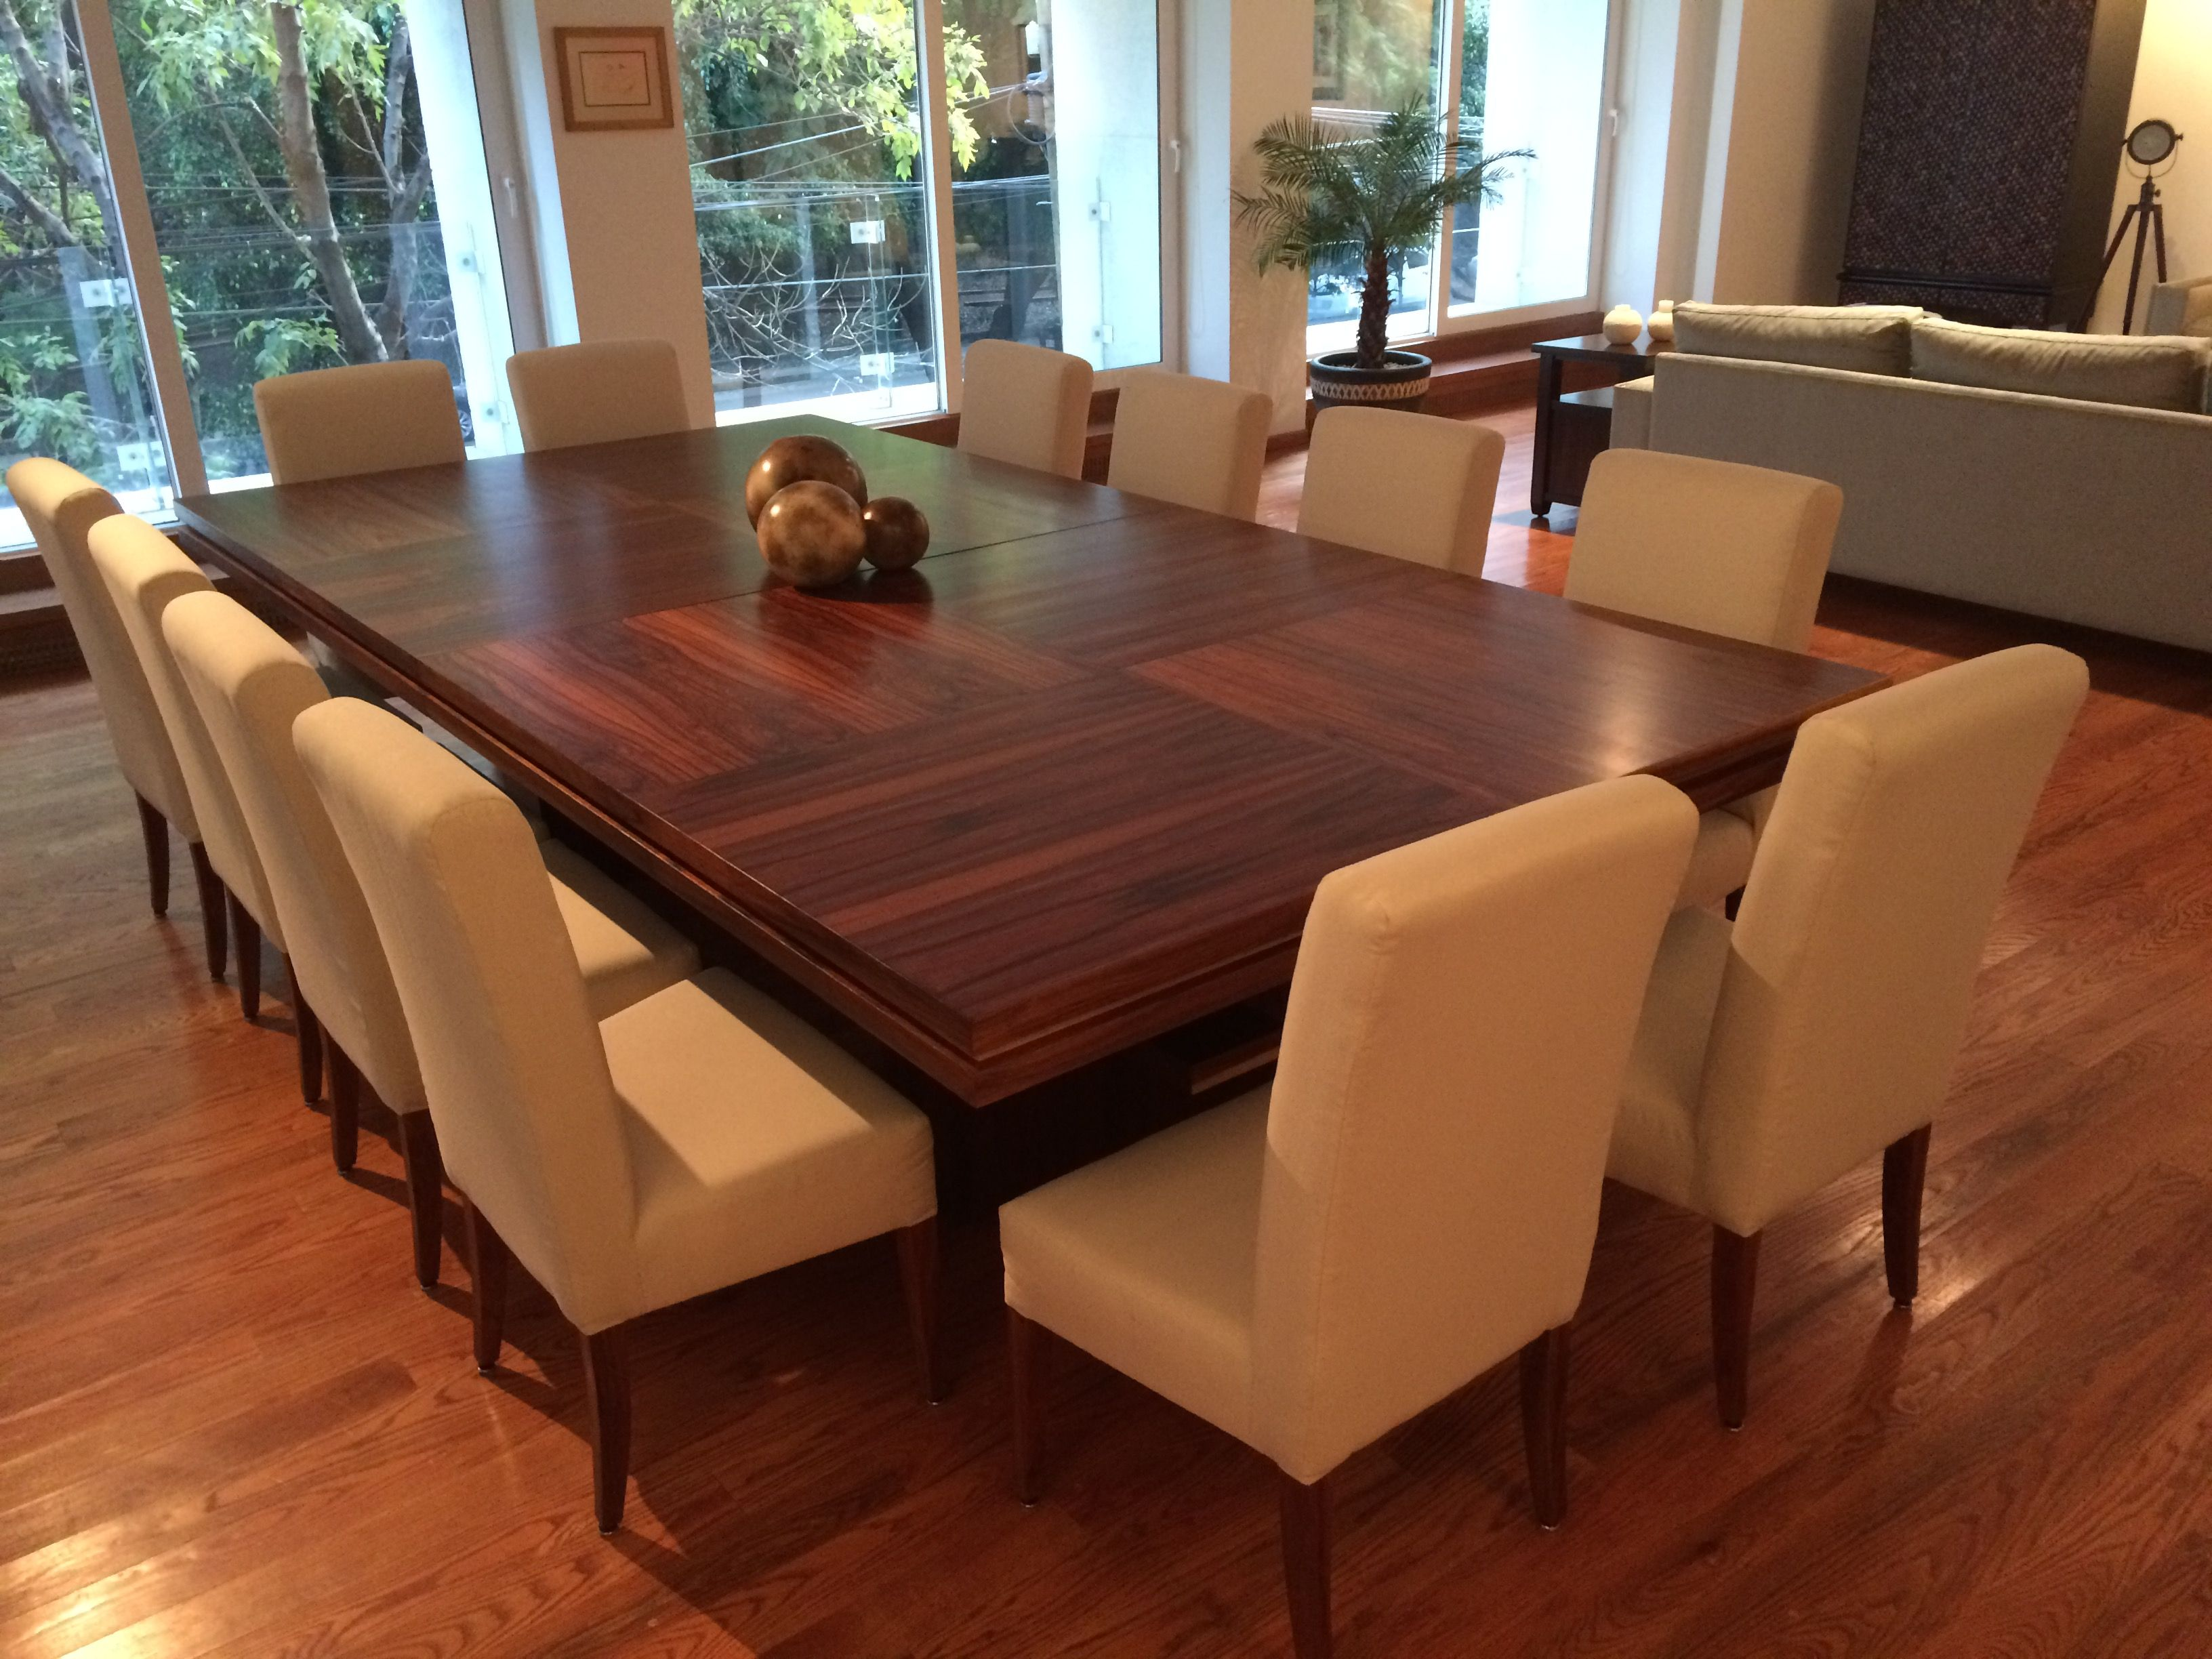 Large Dining Room Table Seats 12 With Decoration In Wood Floors Also The  Design Of The White Dining Chairs And Plant Decoration Design With Large  Dining ...